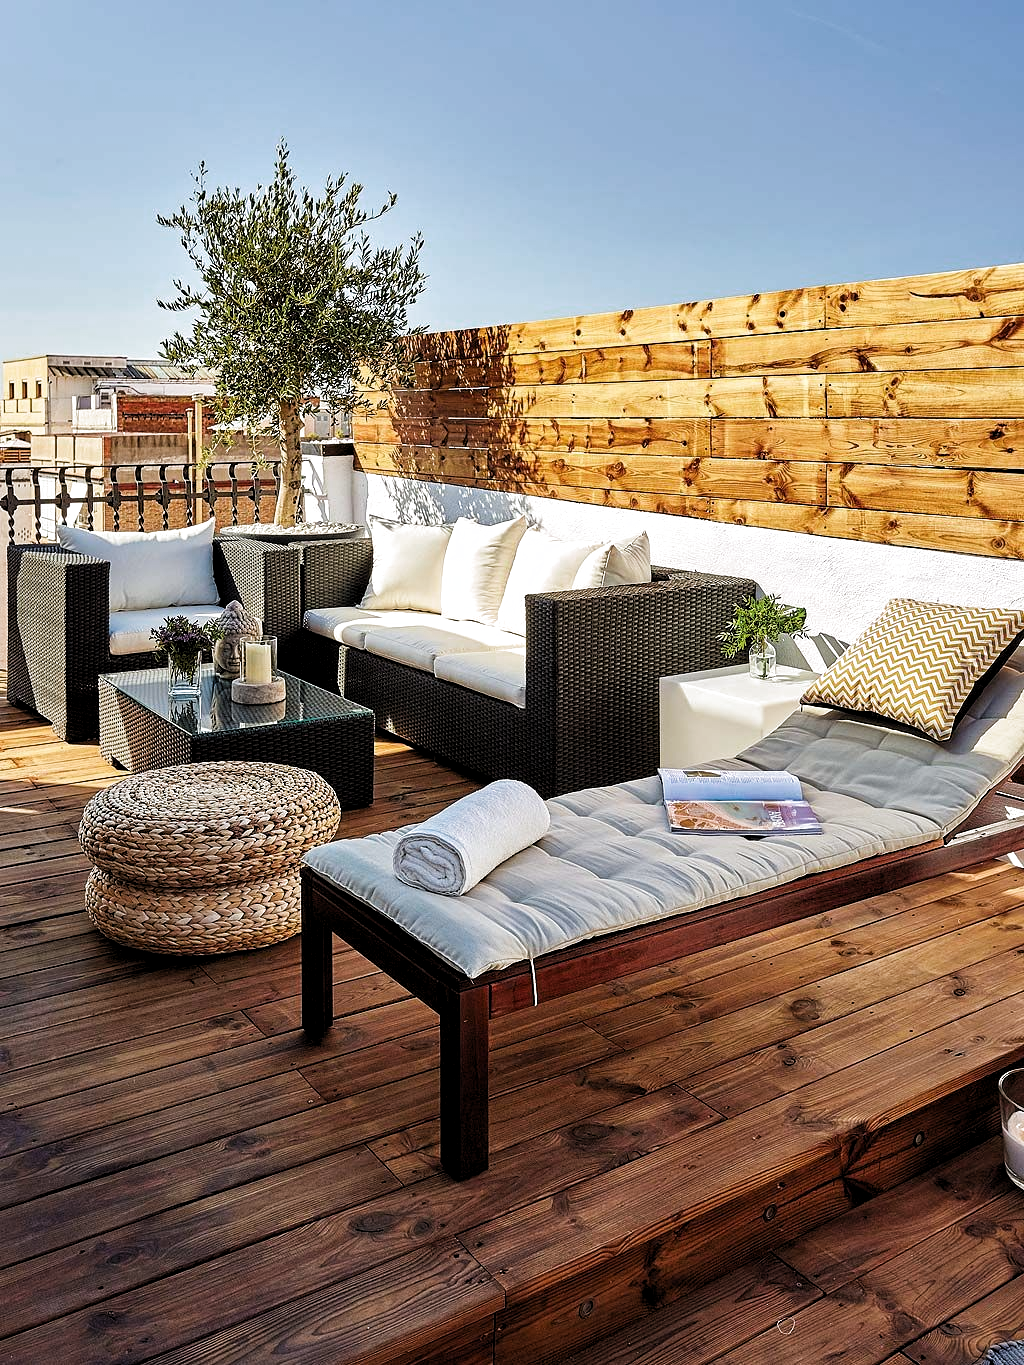 Pin By Lydia Stern On Terrasse Ideer In 2020 Rooftop Terrace Design Outdoor Furniture Modern Patio Furniture